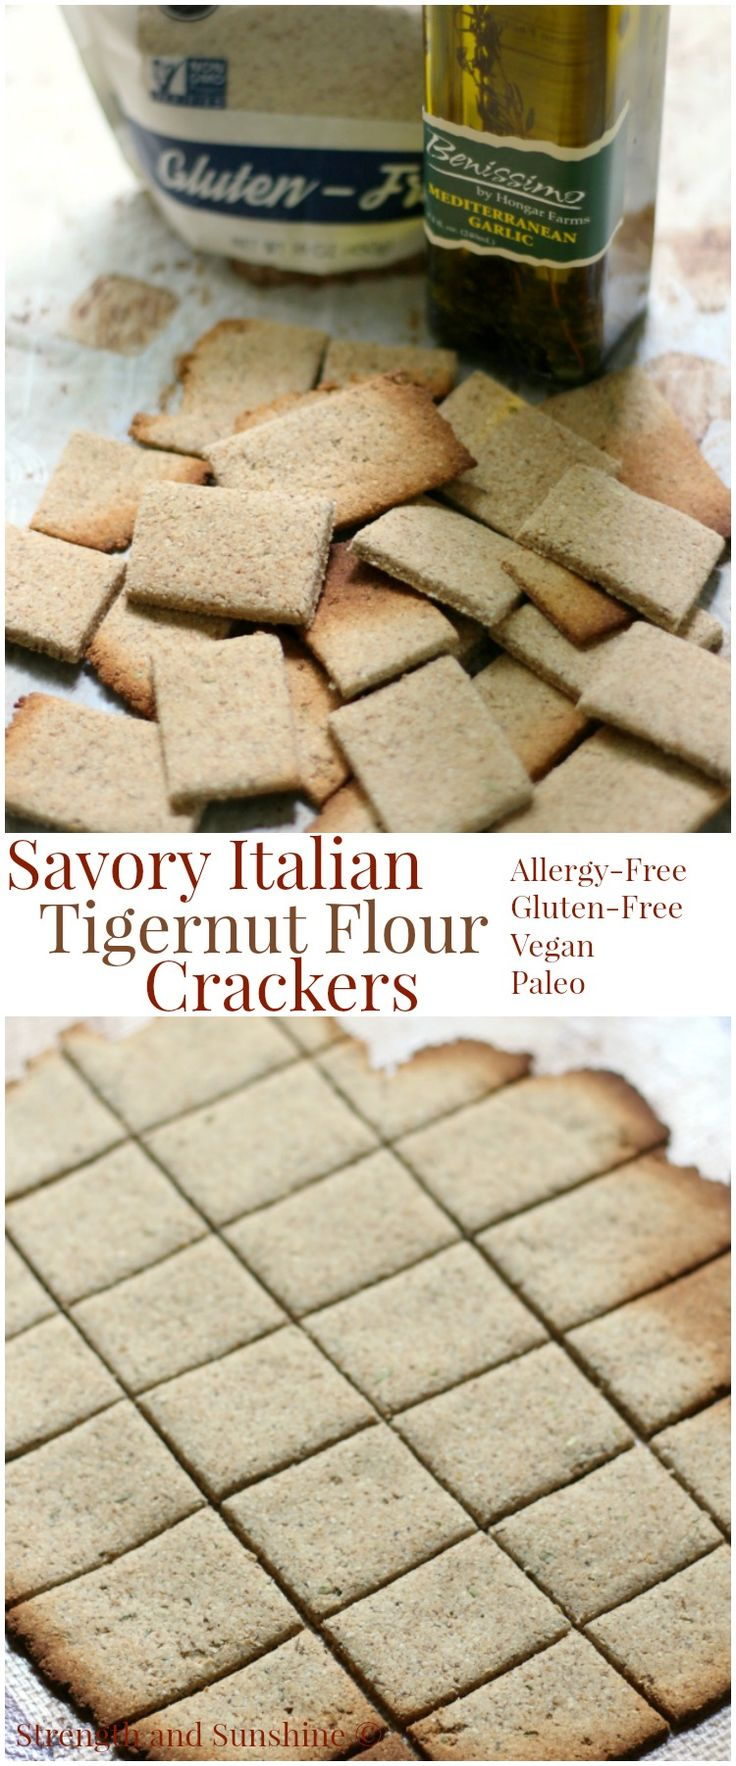 Savory Italian Tigernut Flour Crackers (Gluten-Free, Vegan, Paleo)   Strength and Sunshine @RebeccaGF666 A healthy and delicious grain-free snack! Savory Italian Tigernut Flour Crackers, easy and homemade, baked in the oven, and gluten-free, vegan, paleo, and allergy-free! They are perfect for an everyday snack or a fancy addition to an appetizer platter!